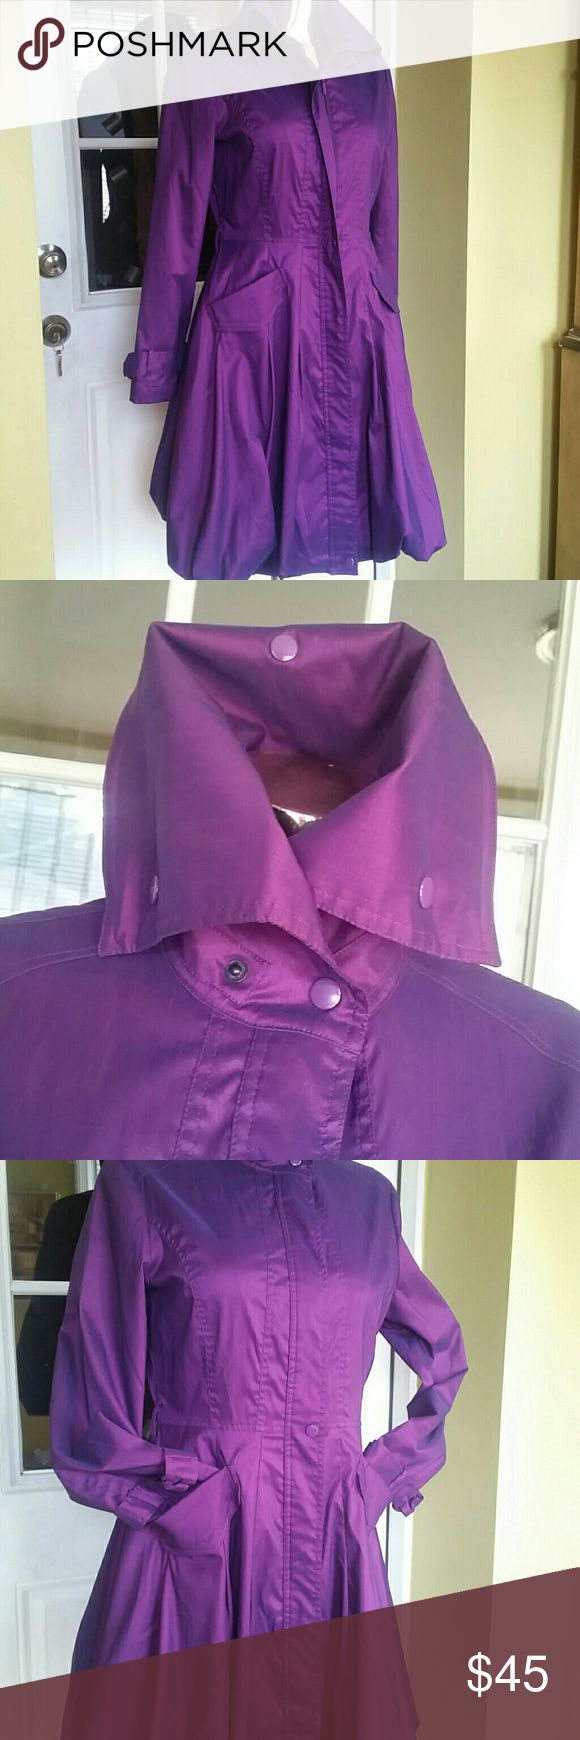 Gorgeous  purple  trench  coat Gently  used,very trendy, beautiful  color, pictures  don't  give  a justice,  size S,belt is not attached  Length  shoulders  down 39 inches  Waist circumference 30 inches  Chest  circumference  38 inches  Cute! Clean in&out Jackets & Coats Trench Coats